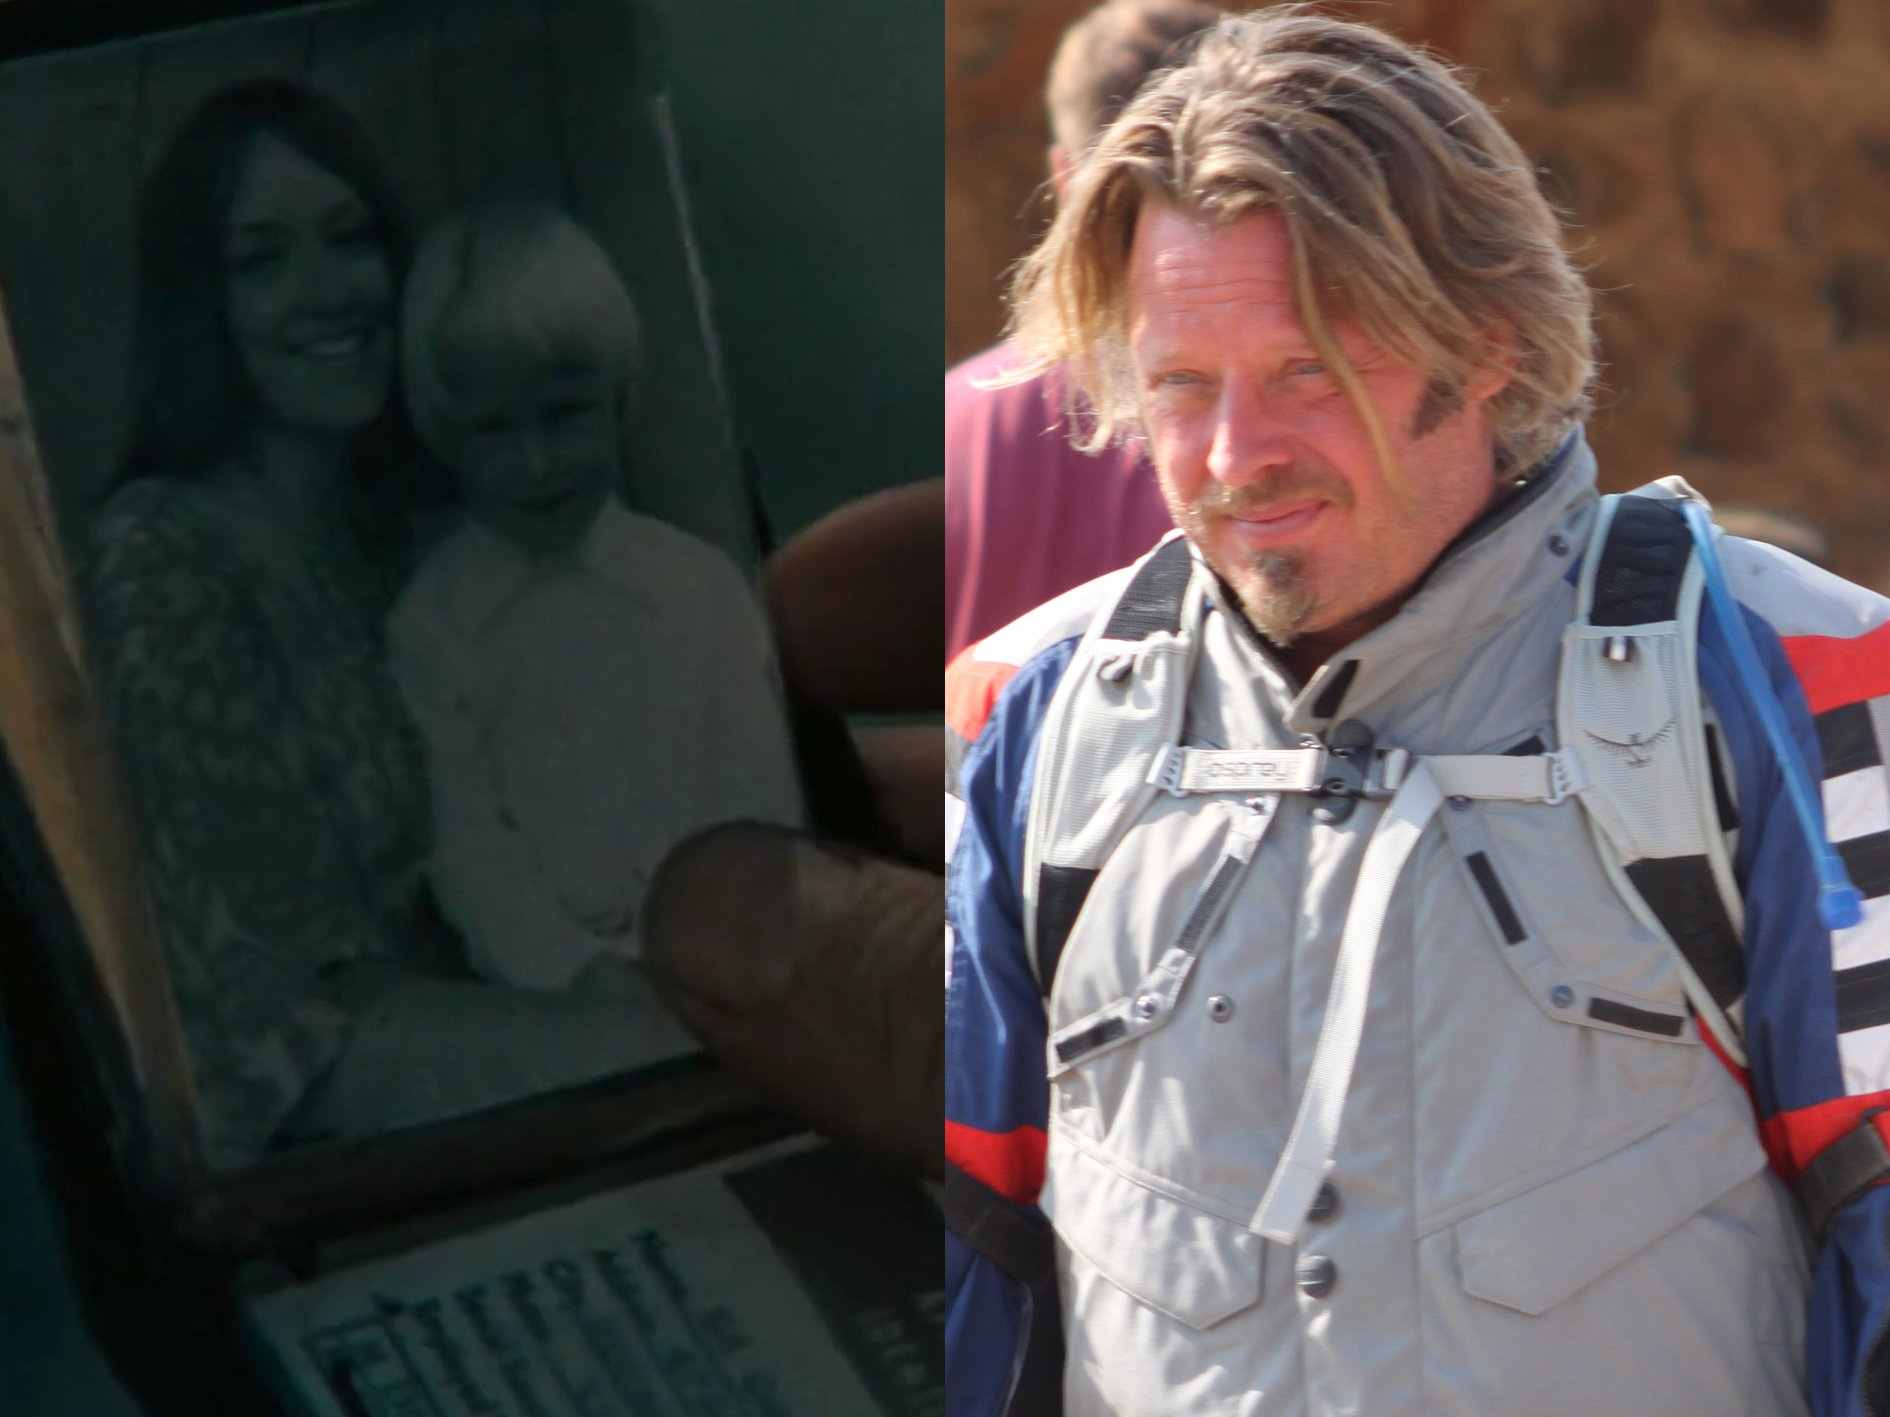 Charley Boorman Deliverance 10 Thrilling Facts You Might Not Have Known About Deliverance